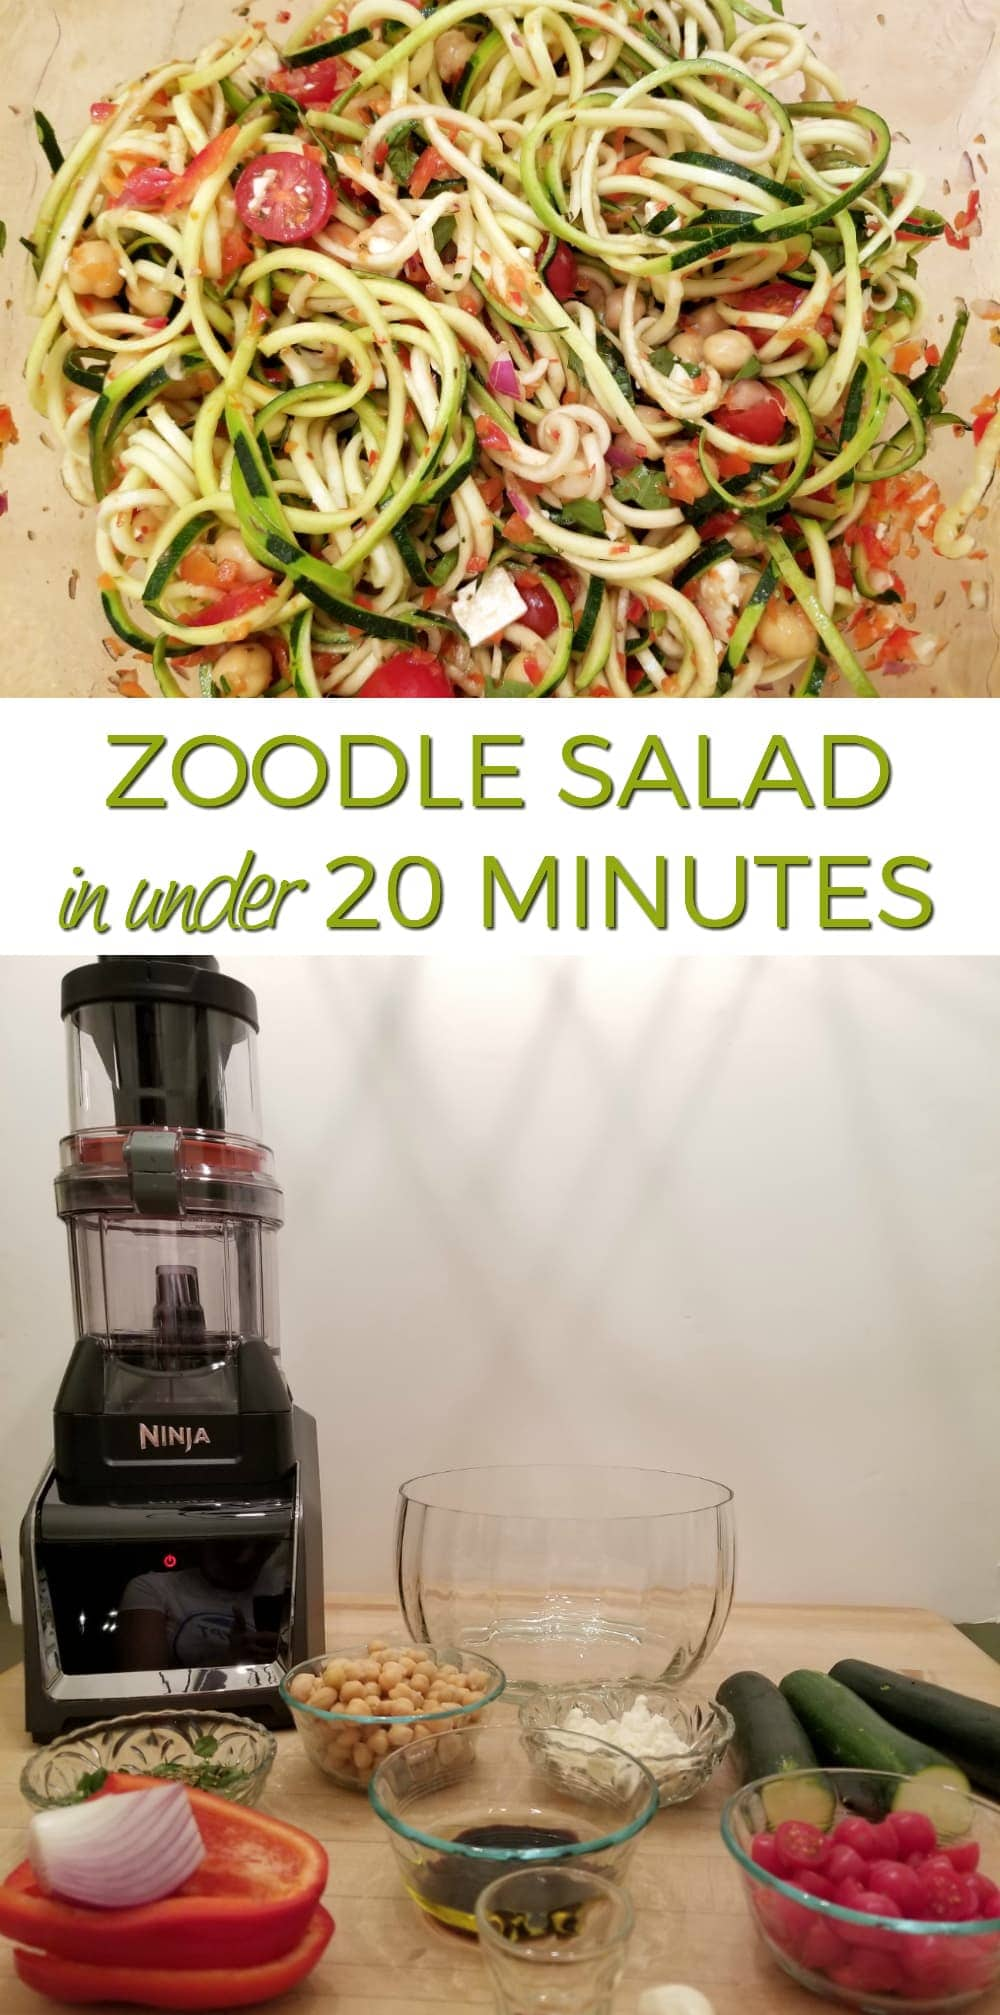 Best Blender for Smoothies and Everything Else - Even Zoodle Salad #NinjaSnapTapGo #NinjaPartner